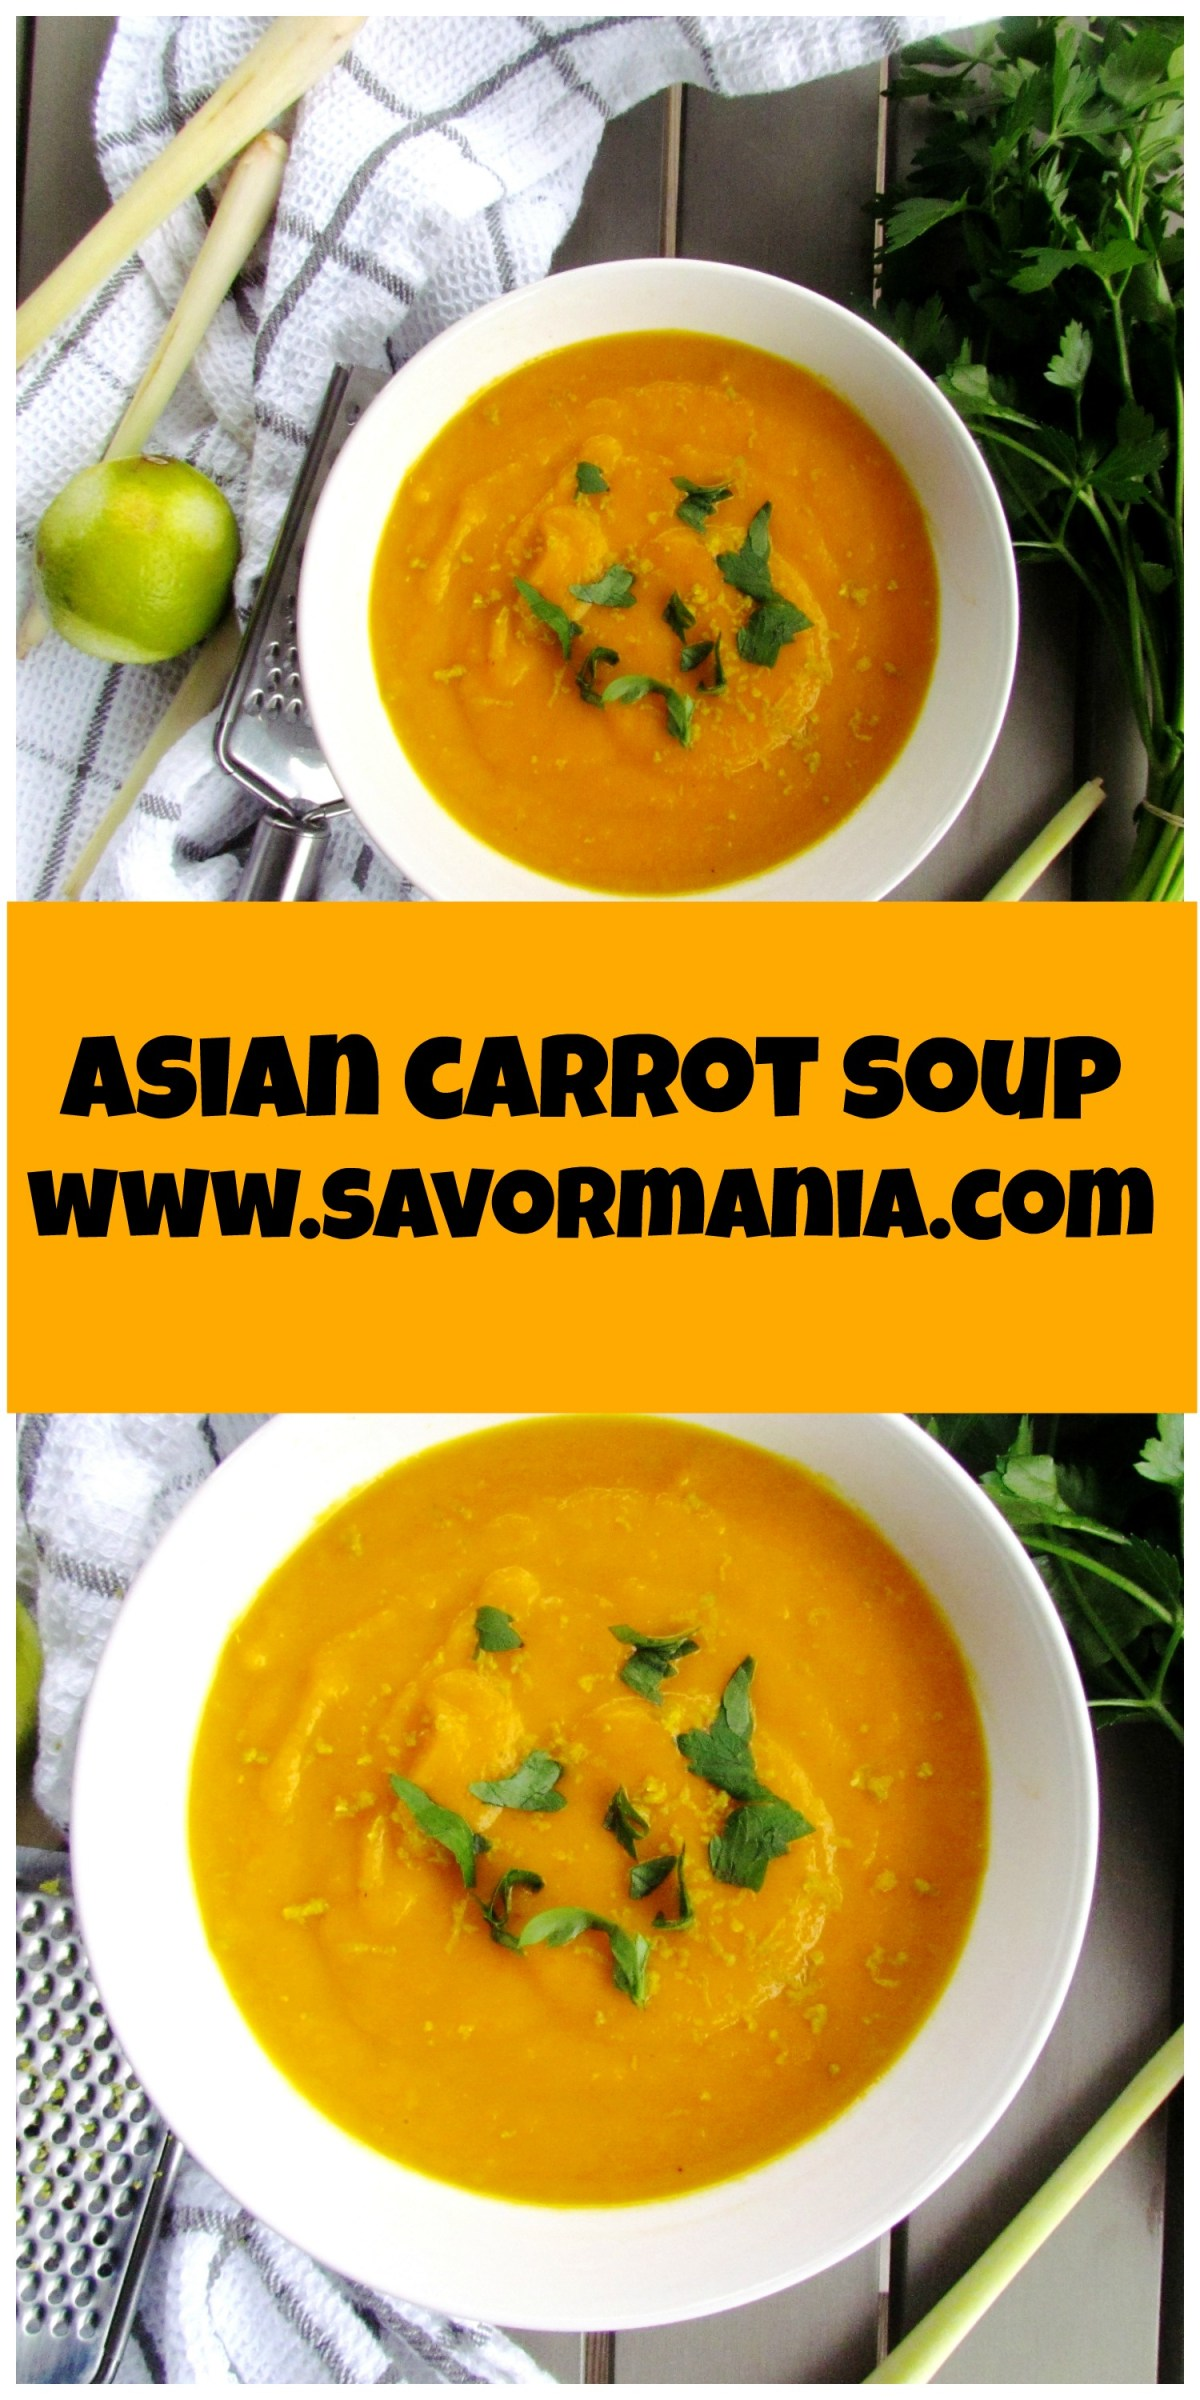 asian carrot soup | www.savormania.com